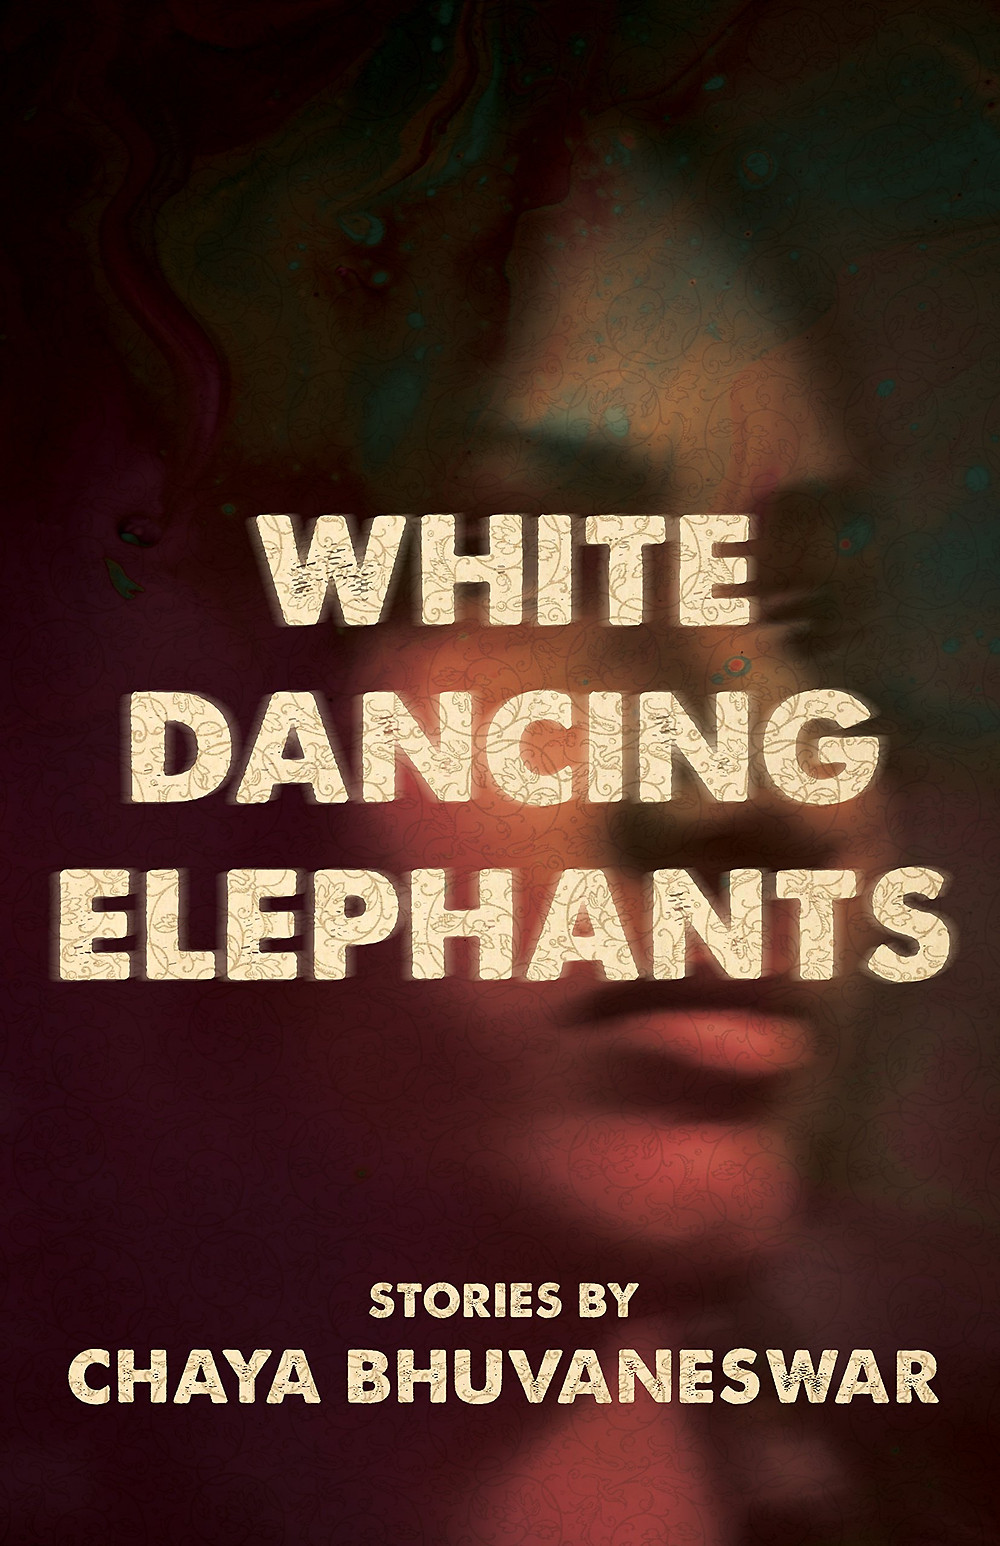 White Dancing Elephants by Chaya Bhuvaneswar